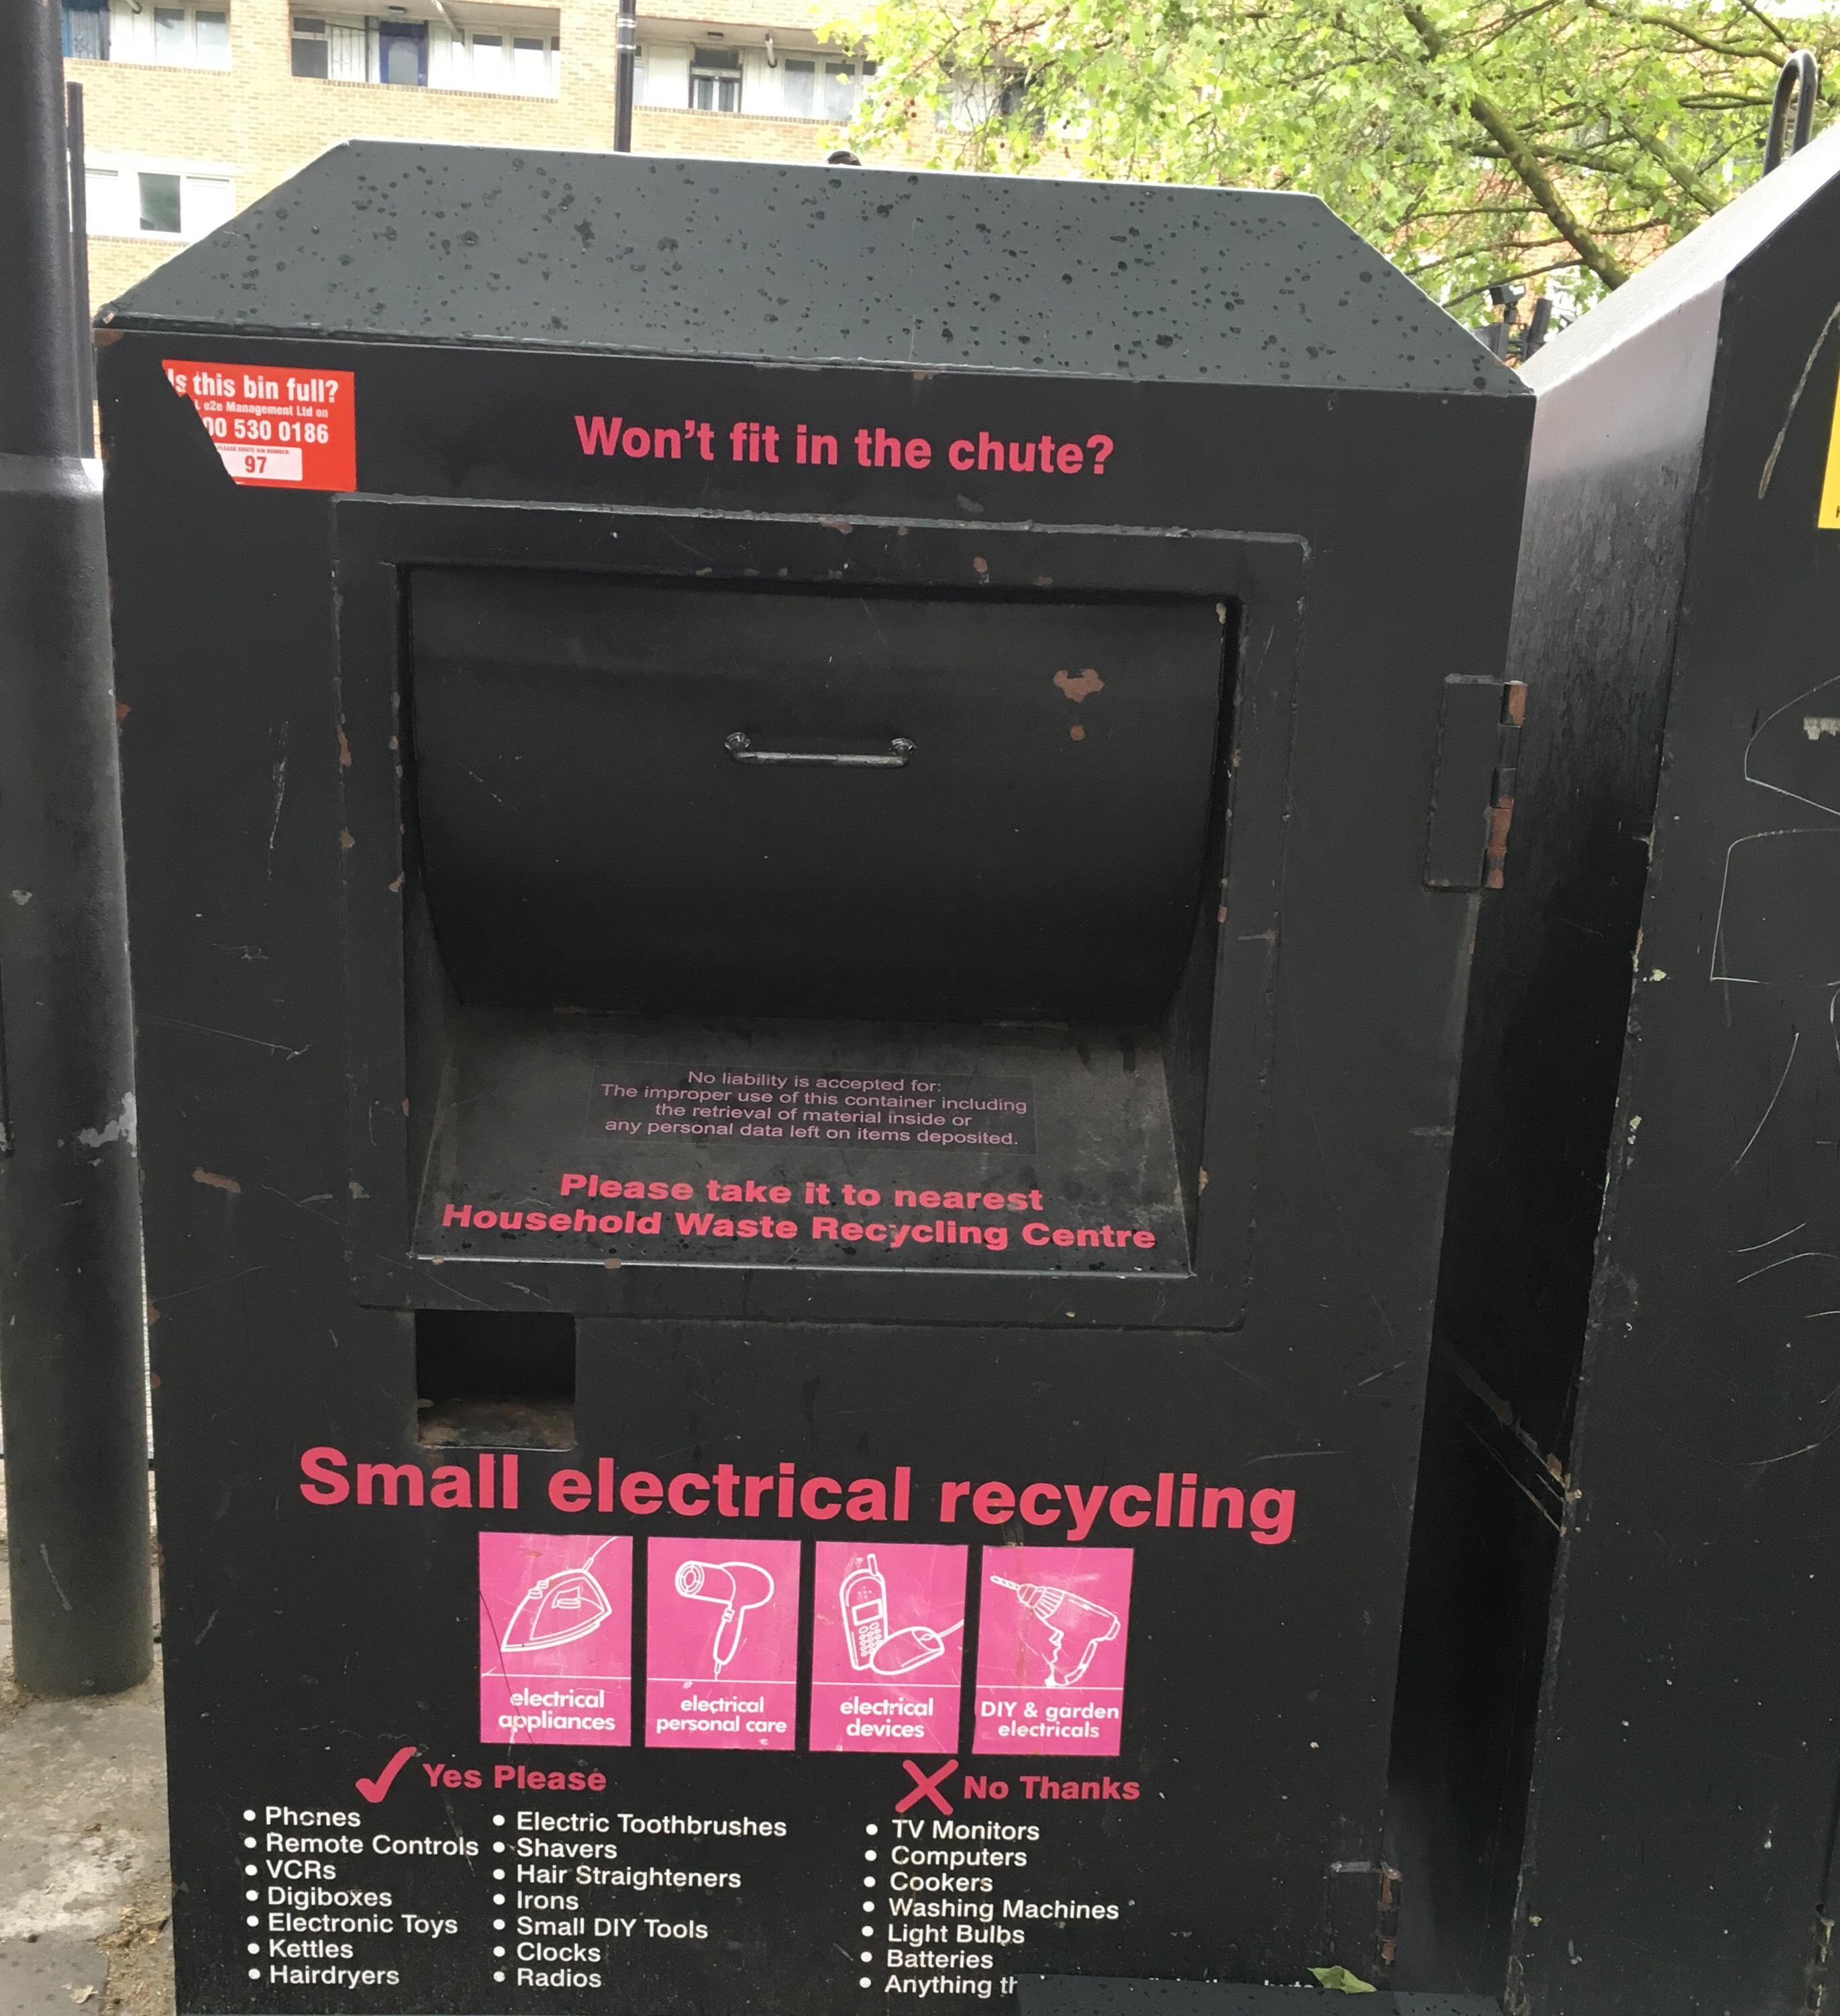 Black metal box for throwing away small electric devices.